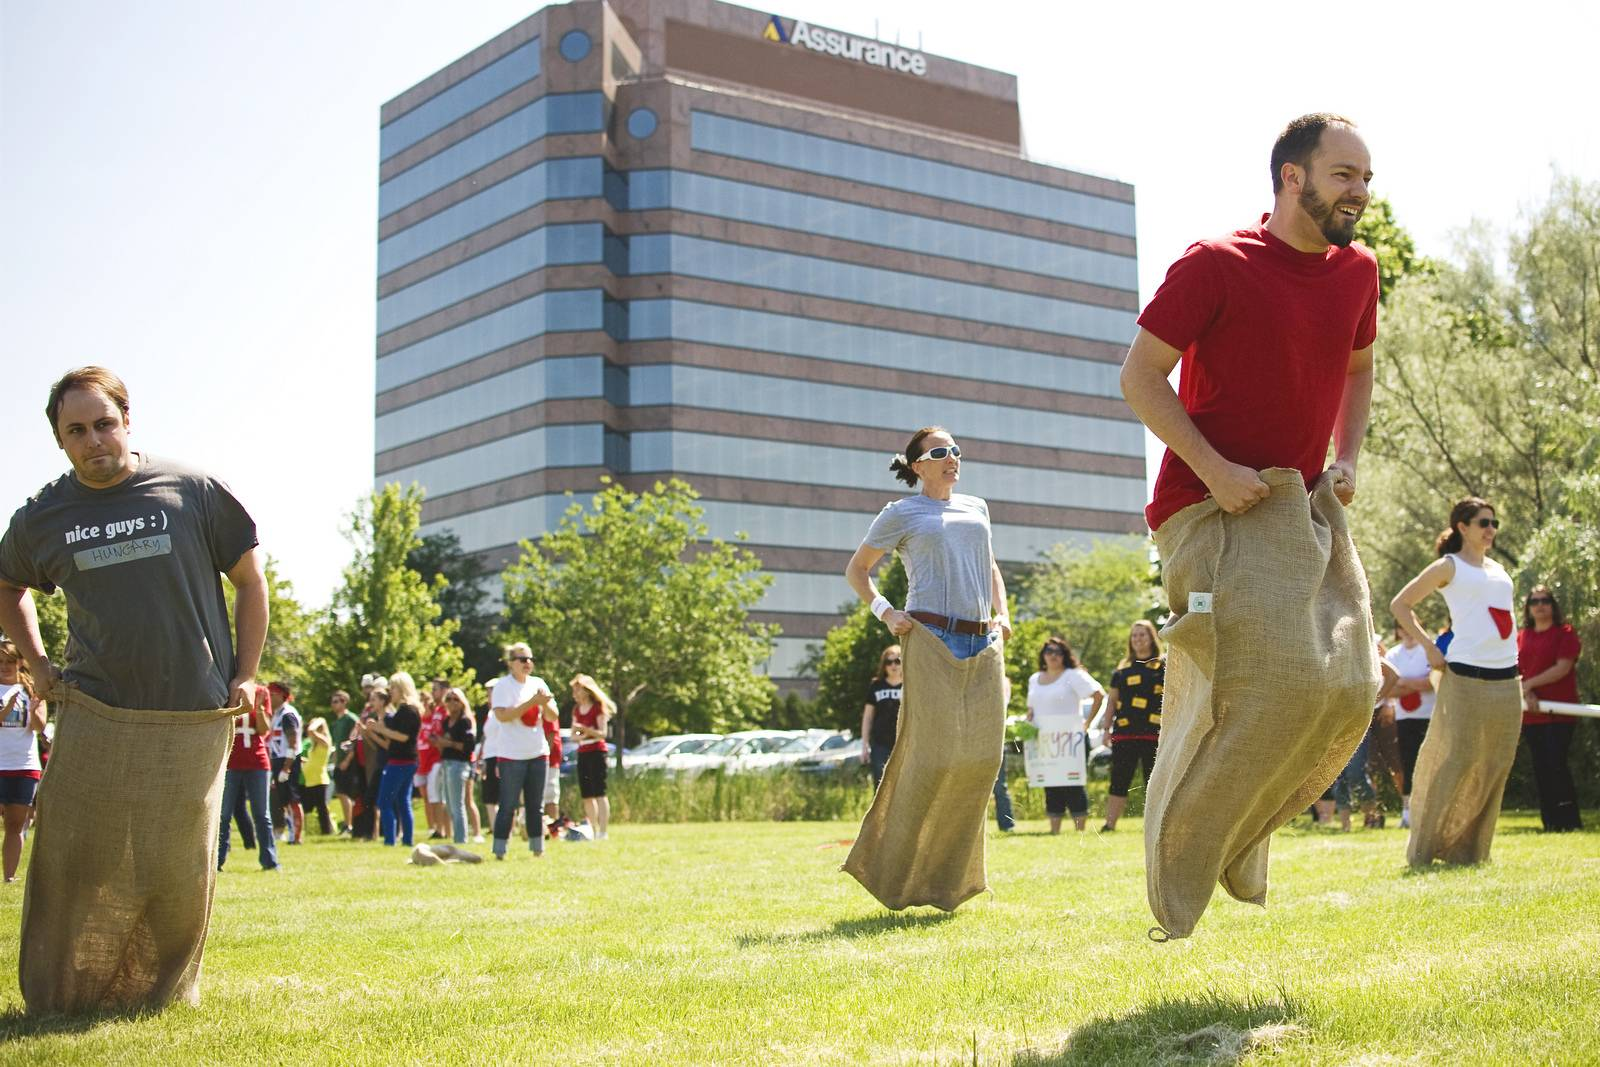 Jim Andrews (with beard) of Elgin, graphic design specialist at Assurance, has a commanding lead in the Potato Sack Race during the annual Assurance Olympics, held to promote corporate wellness on Wednesday, June 19, at company headquarters in Schaumburg. Not far behind are (from left): Ben Kachelmuss of Volo, office and facilities coordinator; Natalie Loechl of Algonquin, senior client service representative; and Talicia Bashford of Palatine, client services director.